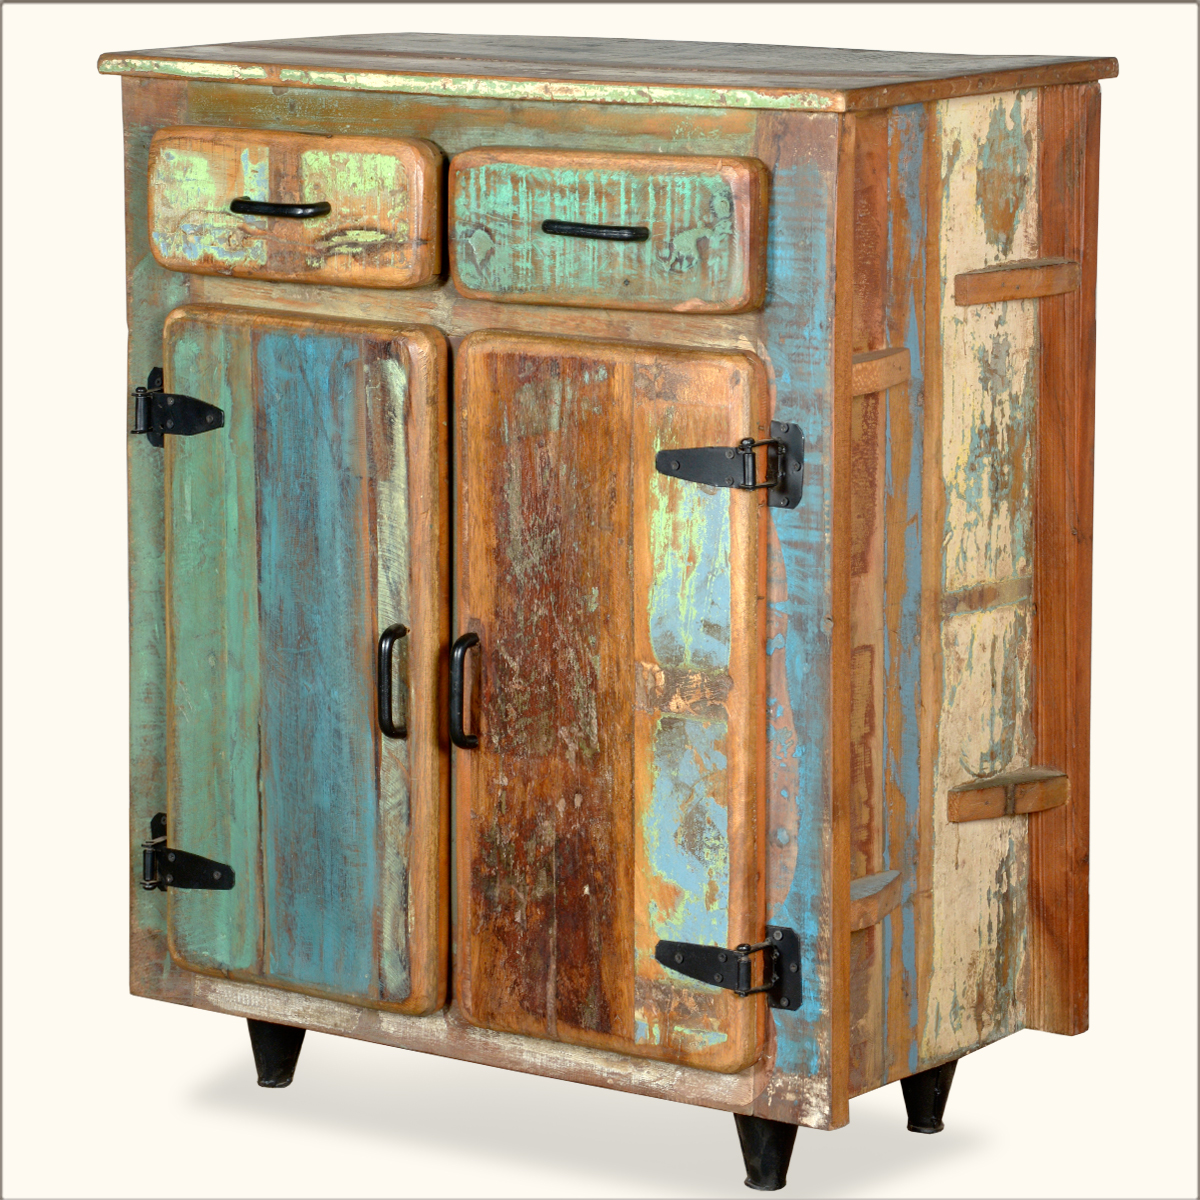 Utility Kitchen Cabinet Reclaimed Old Wood Rustic Kitchen Utility Storage Cabinet